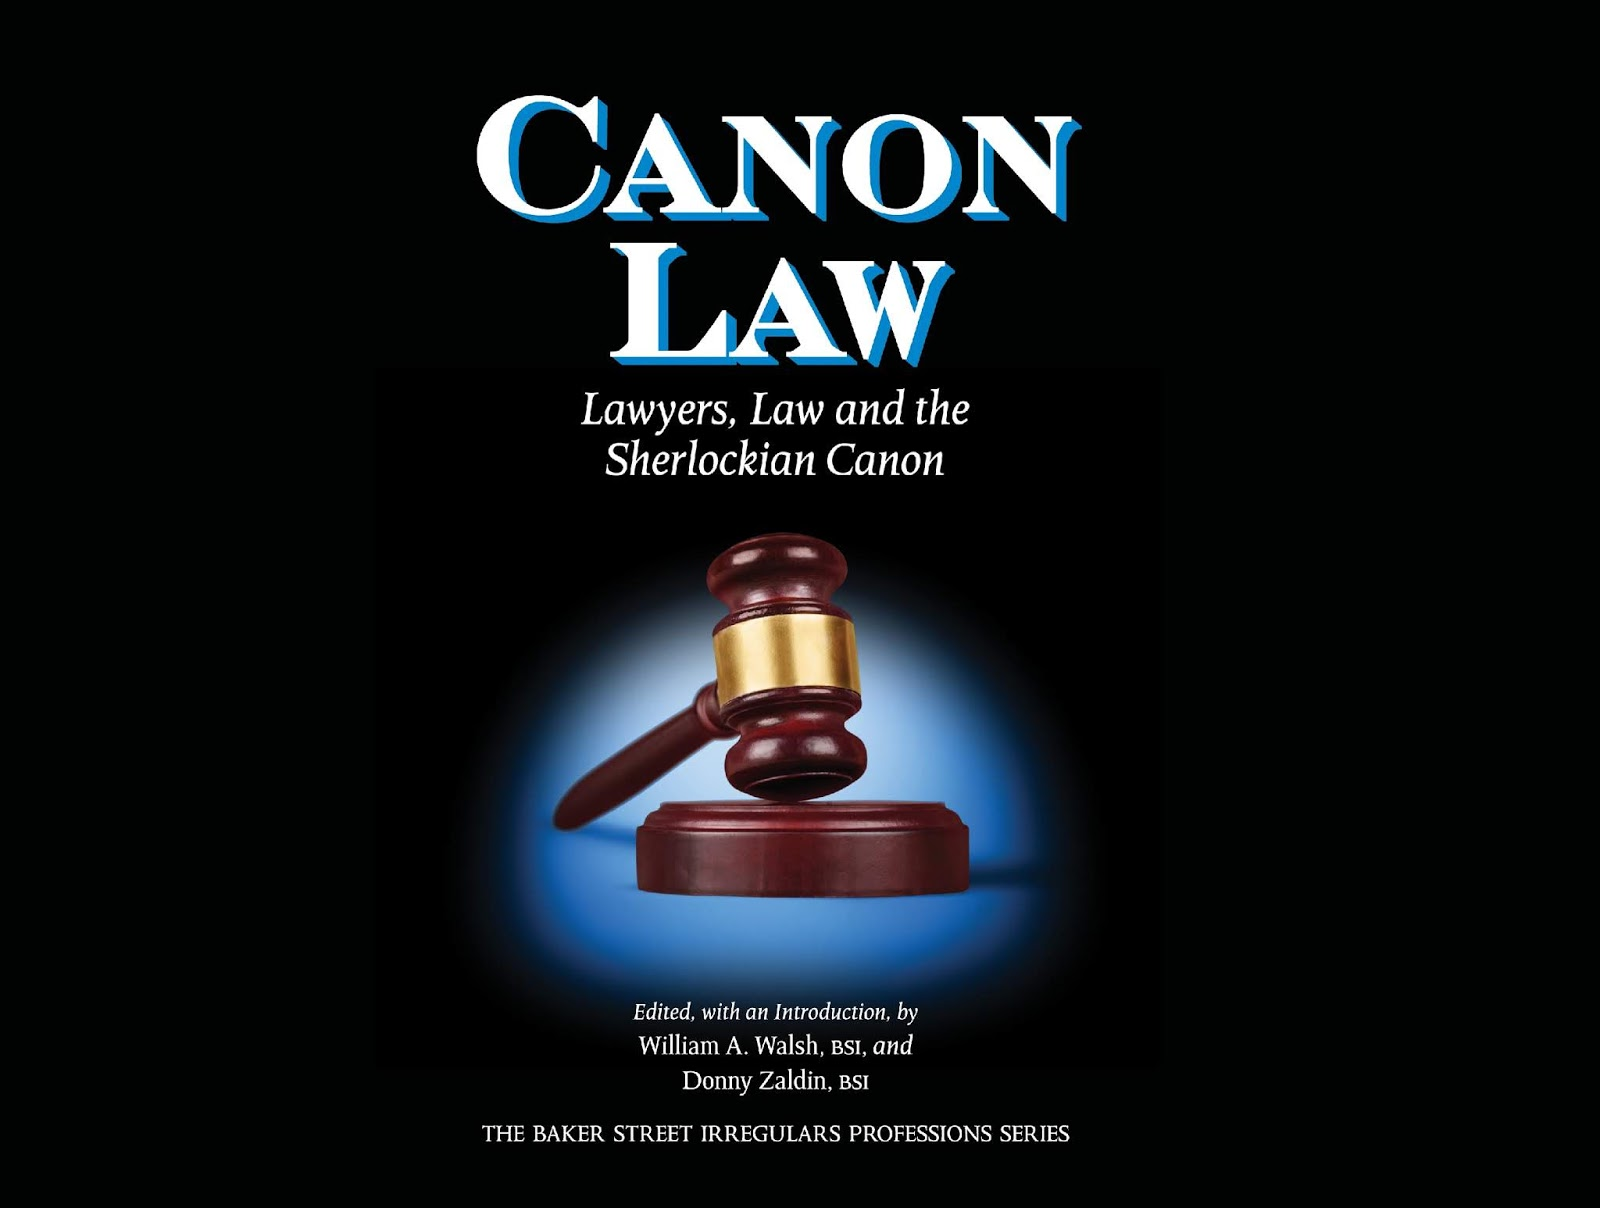 Episode 161: Canon Law